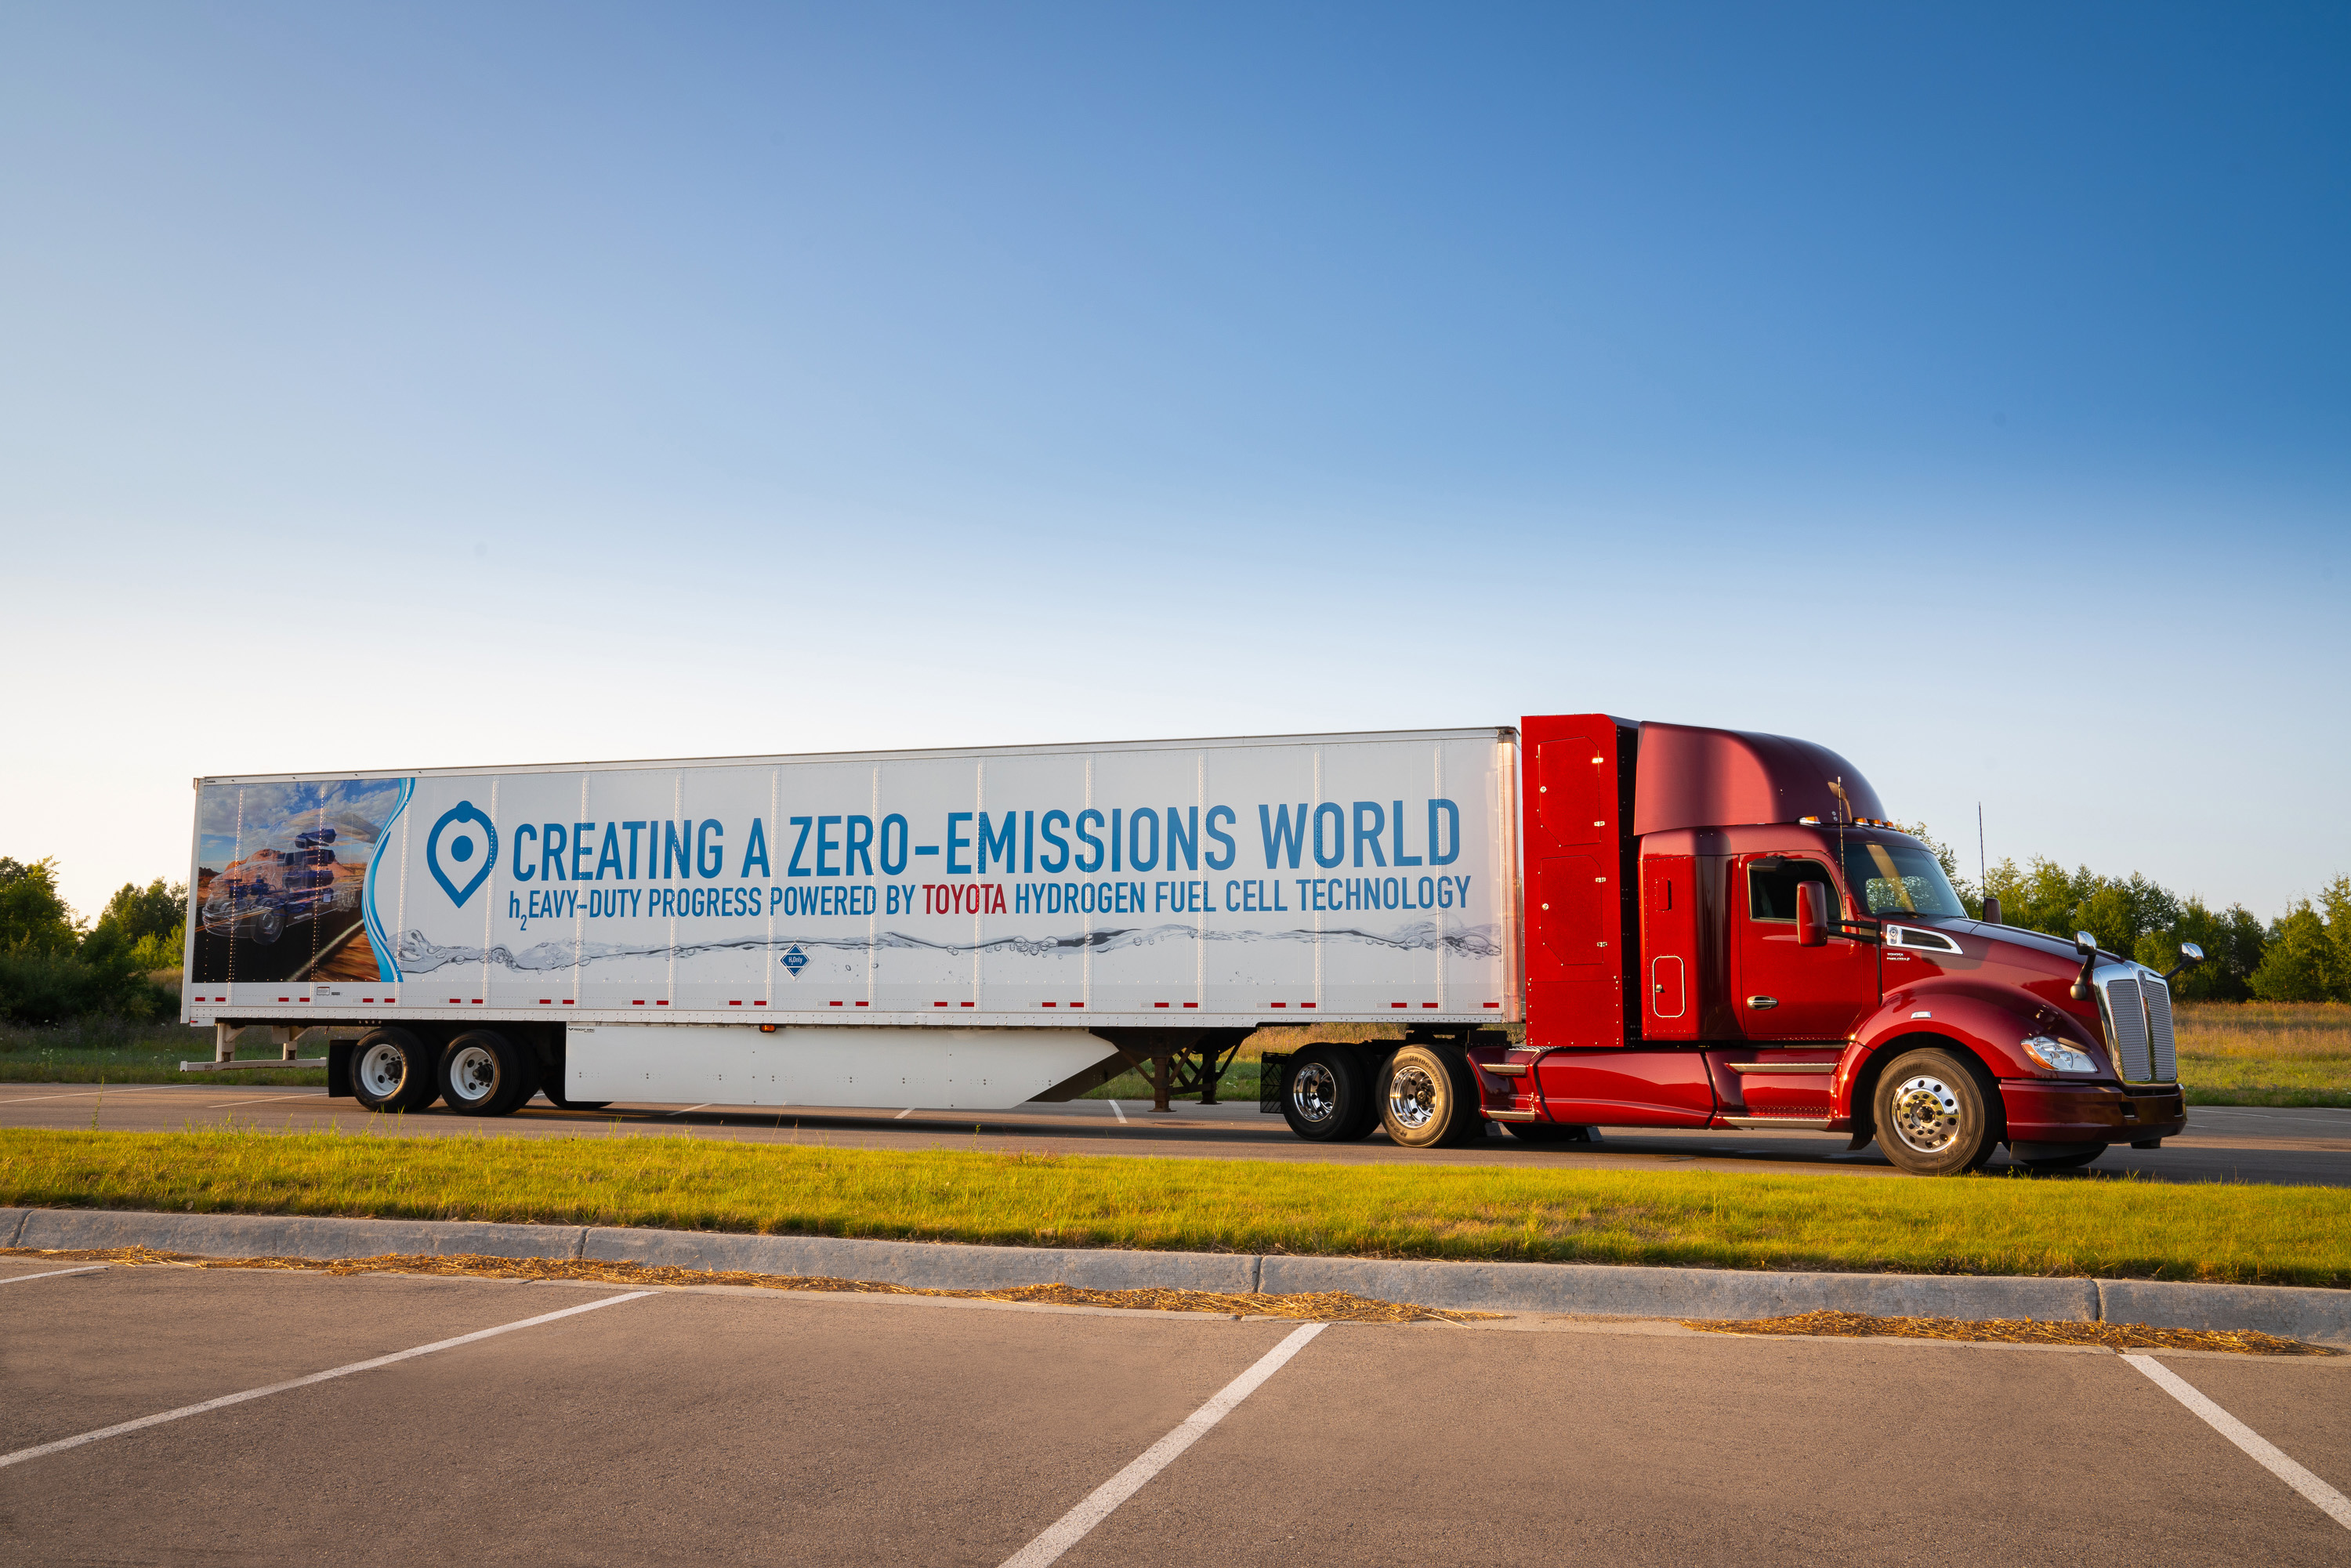 Kenworth truck with Toyota fuel cell